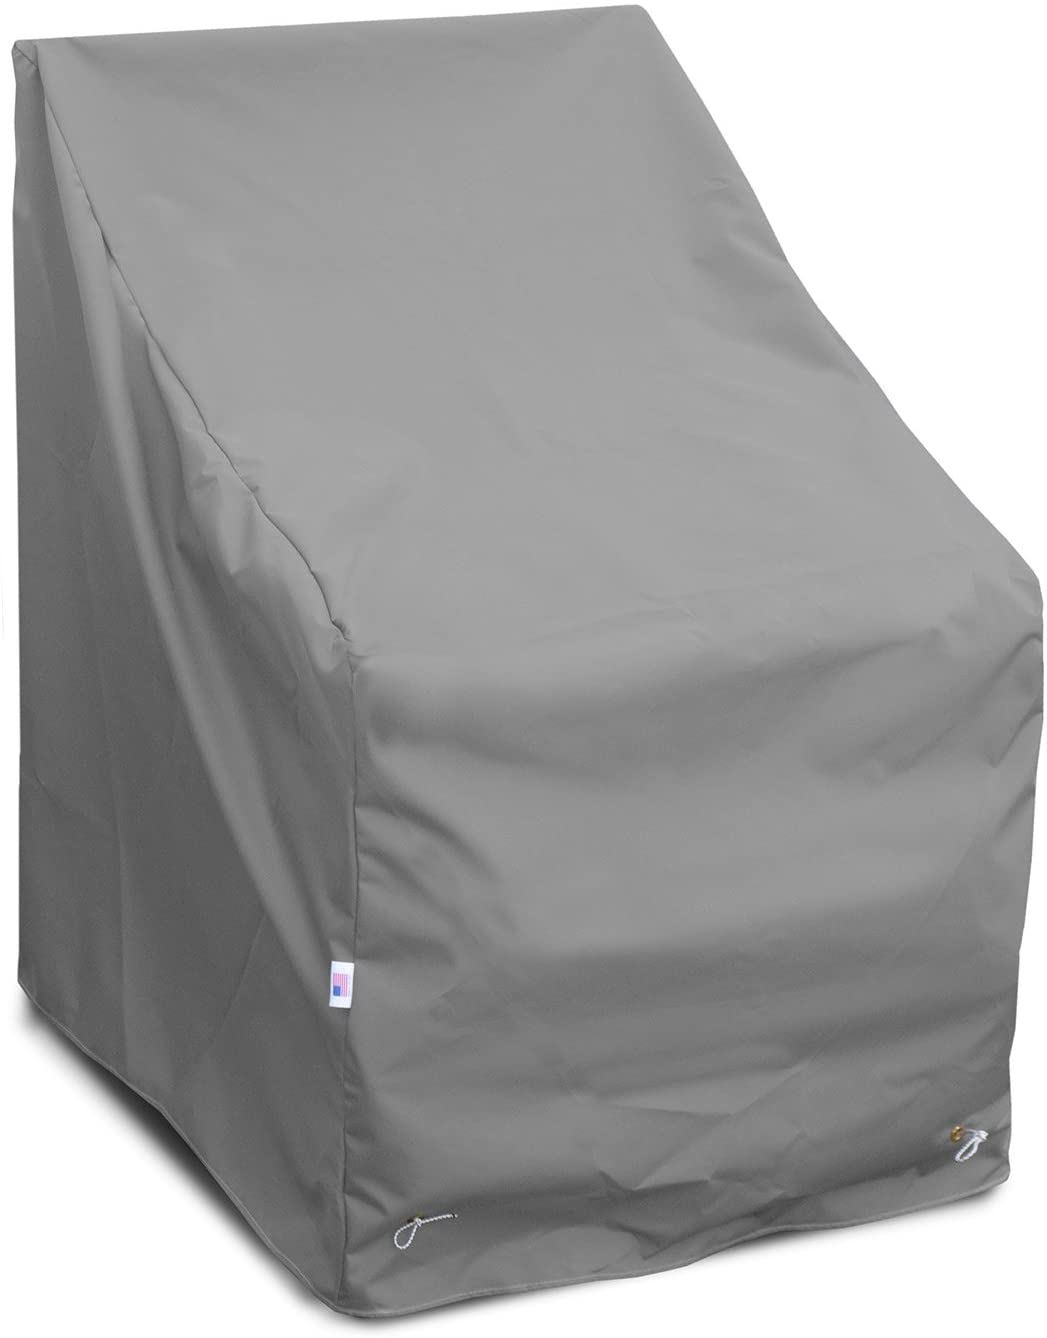 KoverRoos Weathermax 84222 High Back Chair Cover, 32-Inch Width by 37-Inch Diameter by 39-Inch Height, Large Charcoal